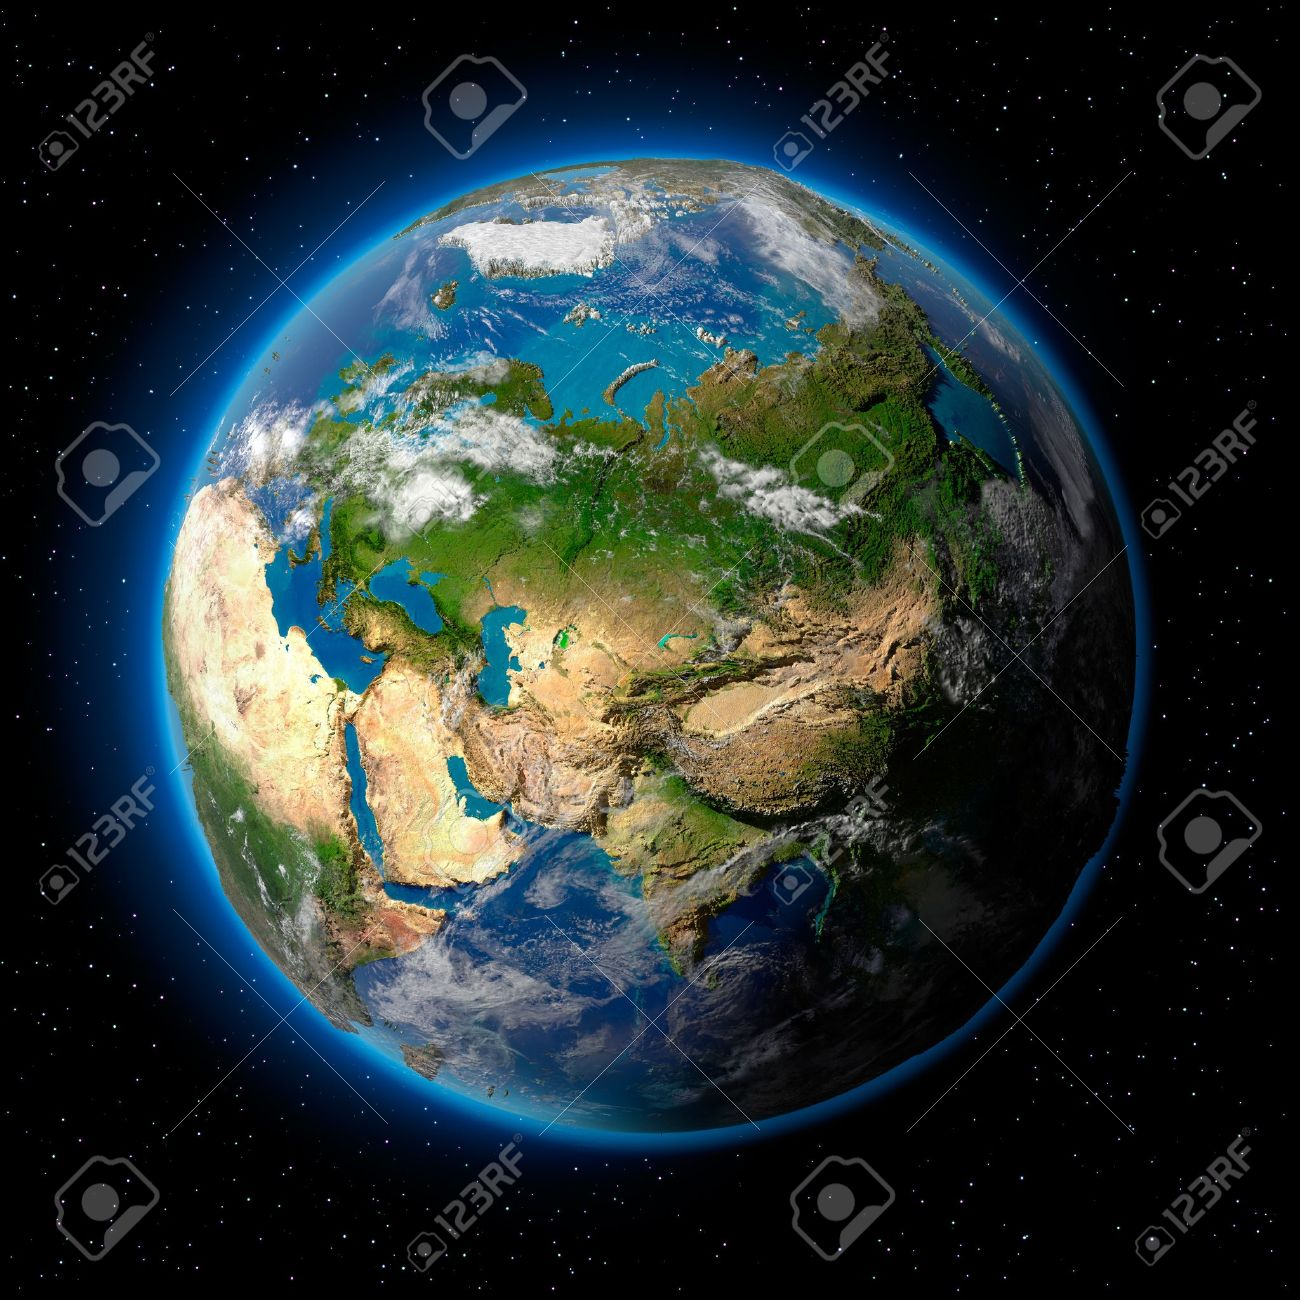 Planet earth with translucent water of the oceans, atmosphere, volumetric clouds, and detailed topography in outer space Stock Photo - 8057377